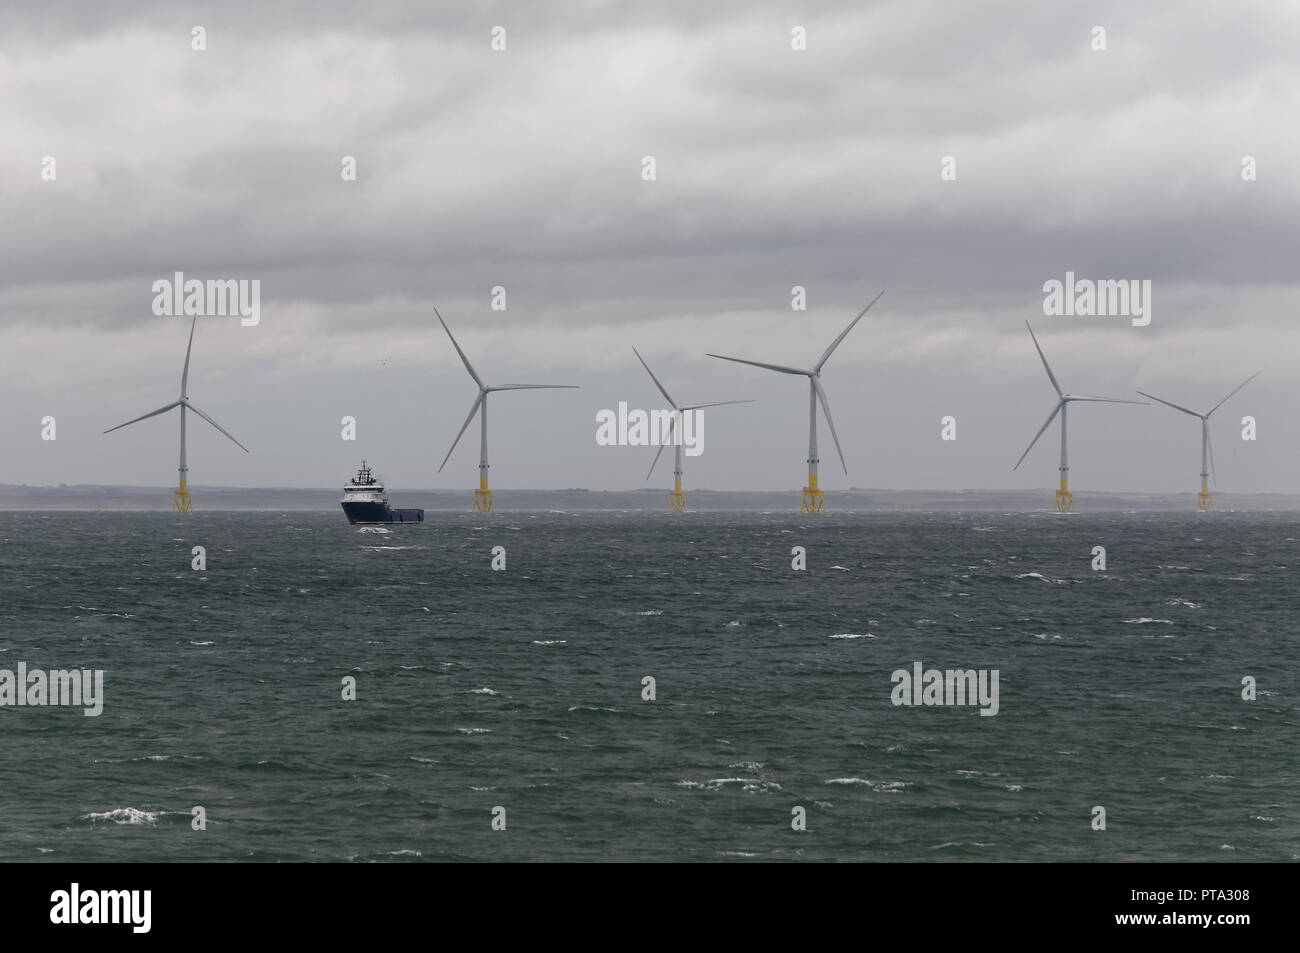 European Offshore Wind Deployment Centre off Aberdeen seen in stormy weather - Stock Image